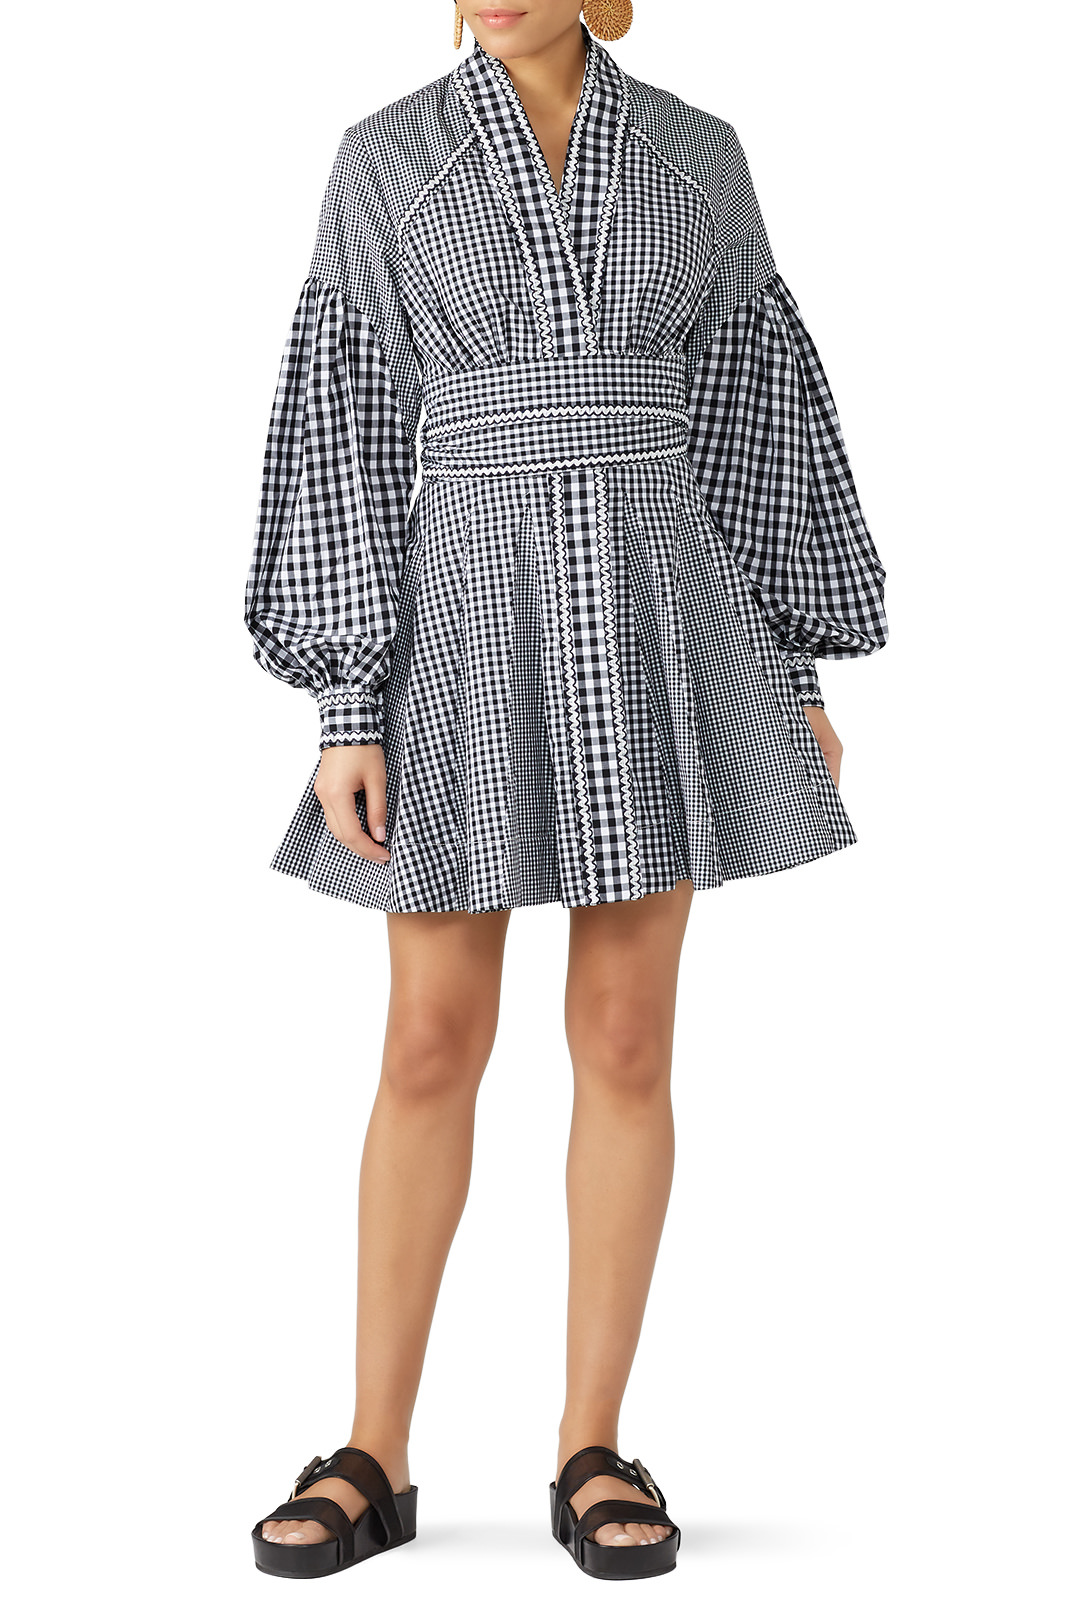 Acler Lella Dress - Gingham is back AGAIN and this dress is a fun take on a print that sometimes reminds you of picnic tablecloths.